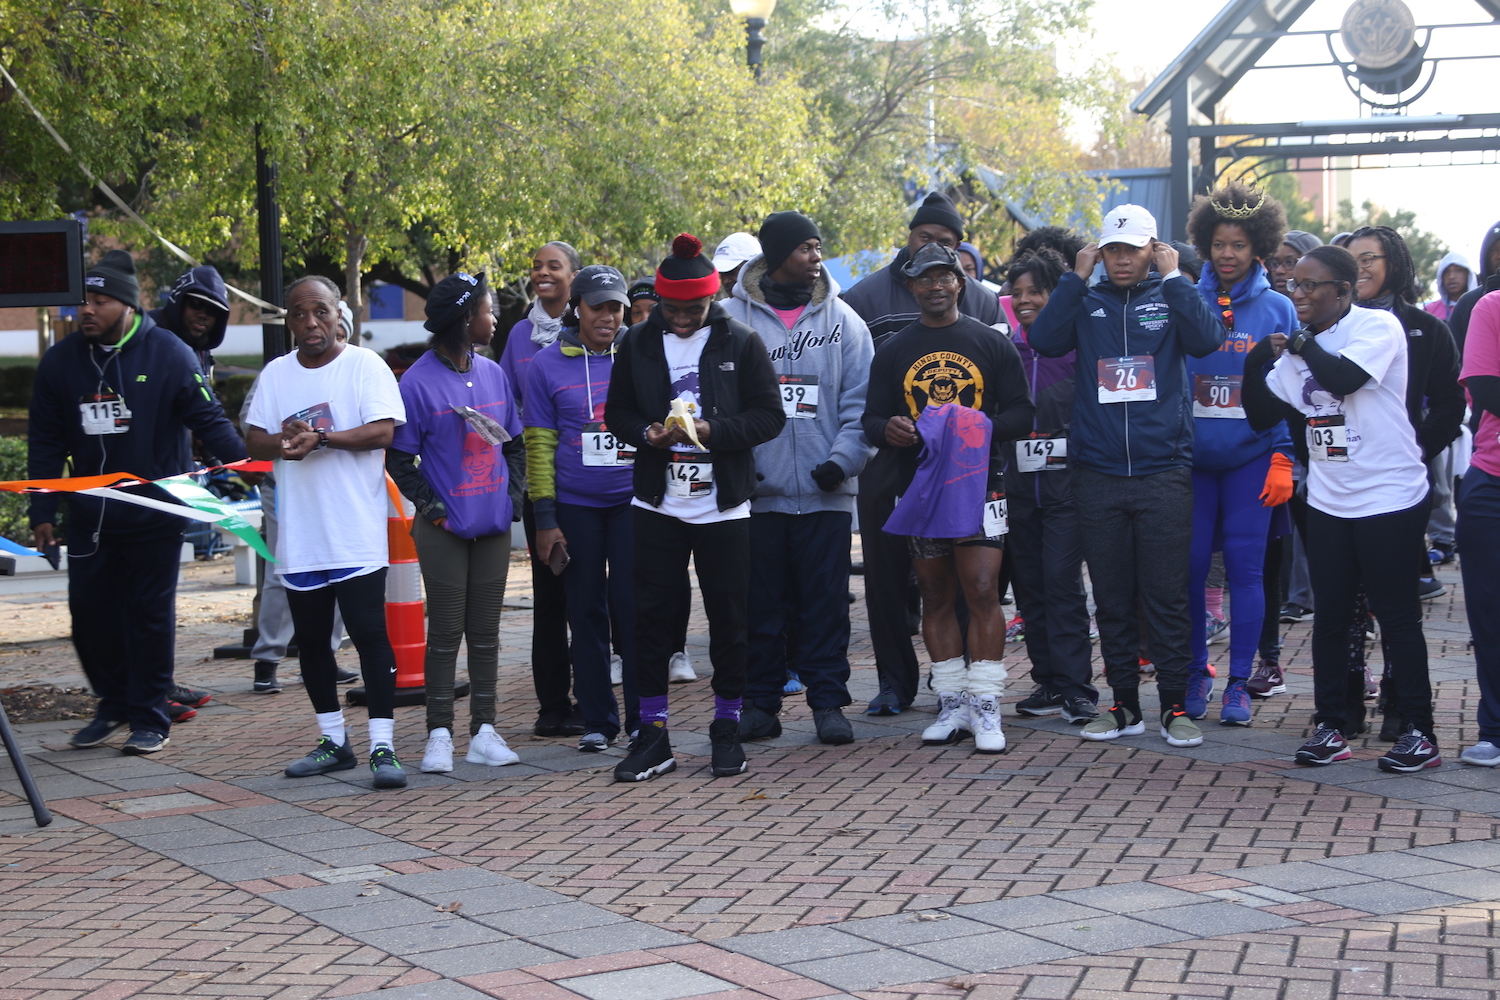 Participants line up at the starting line on the Gibbs-Green Memorial Plaza on Saturday for the 11th annual 5K Latasha Norman Run/Walk. (Photo by Aron Smith/JSU)